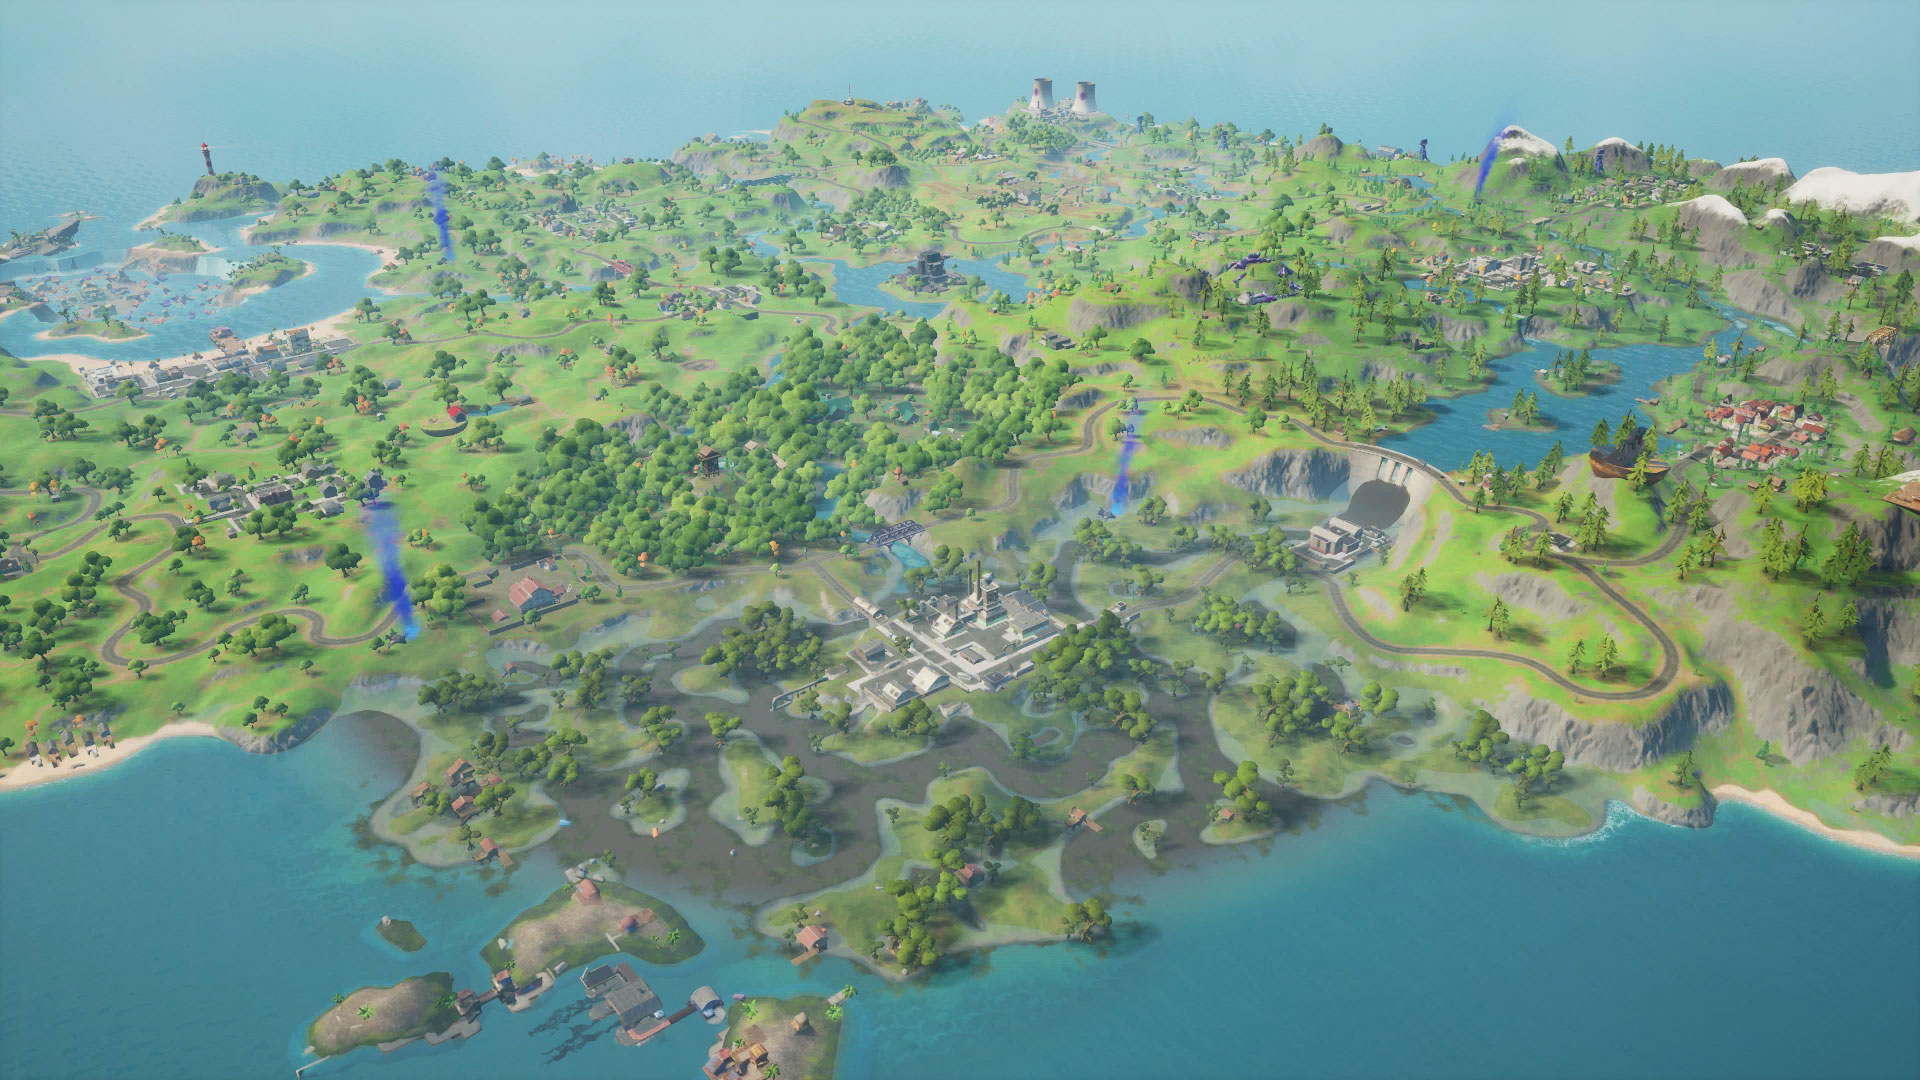 Fortnite Chapter 2 Map Every New Place Of Interest On The Island Gamesradar In a first for fortnite, you have to visit them all to reveal their names on the map. fortnite chapter 2 map every new place